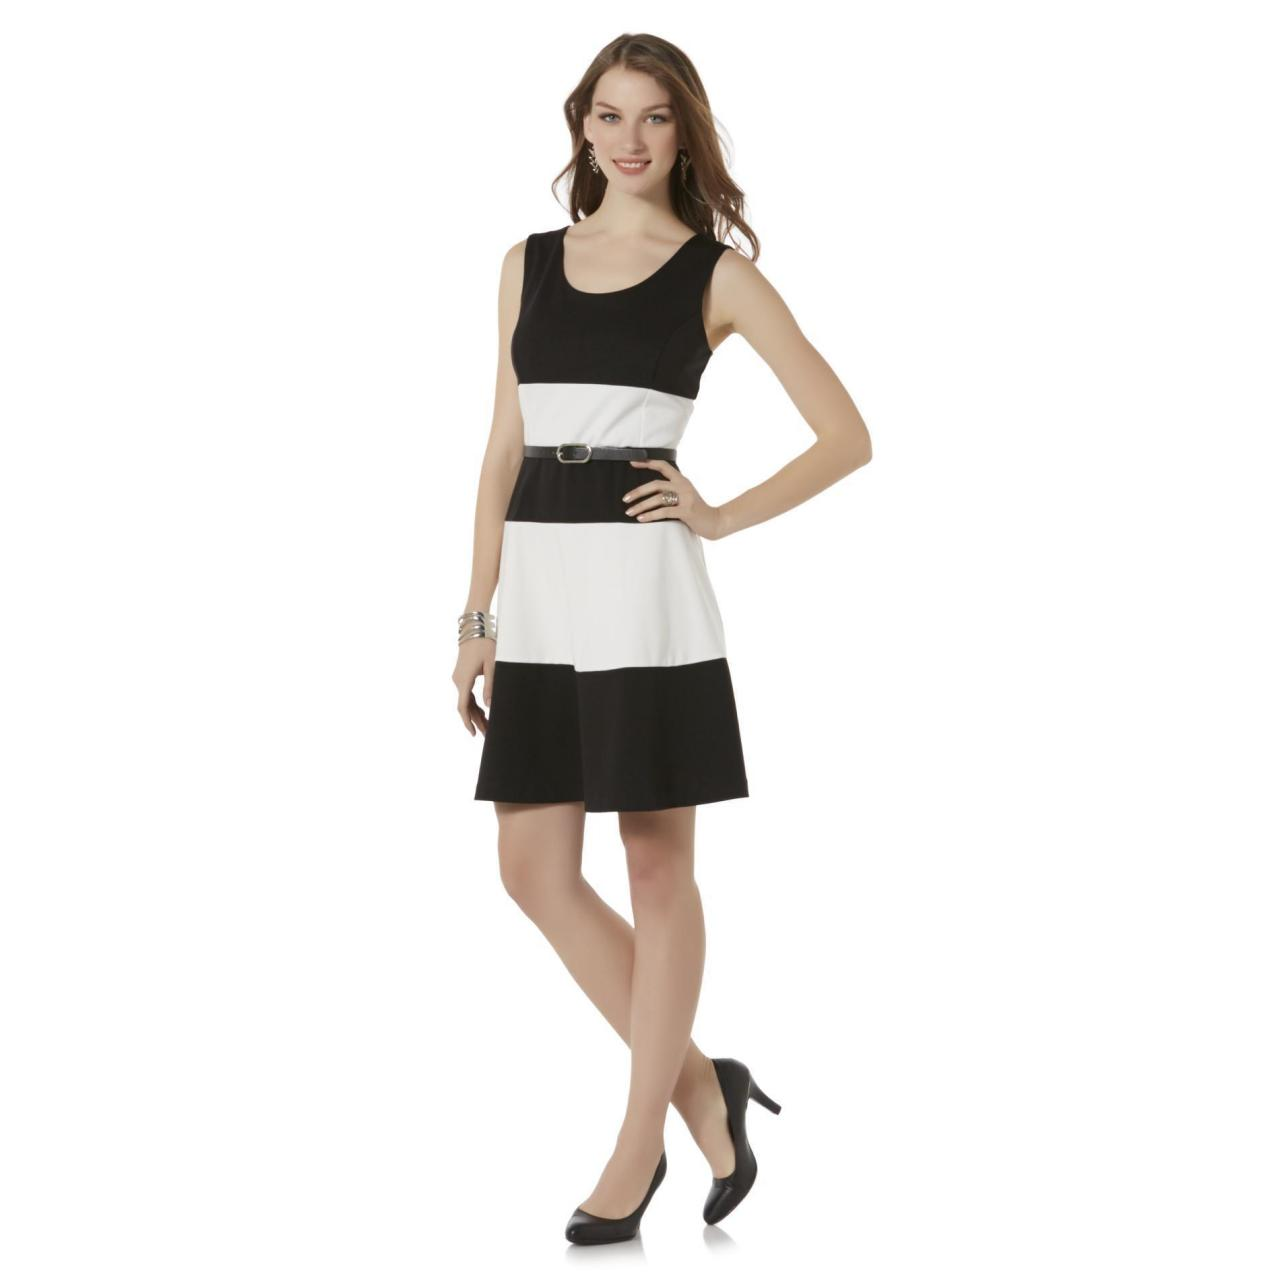 Quality Covington Women's Sleeveless Belted Dress - Striped for sale